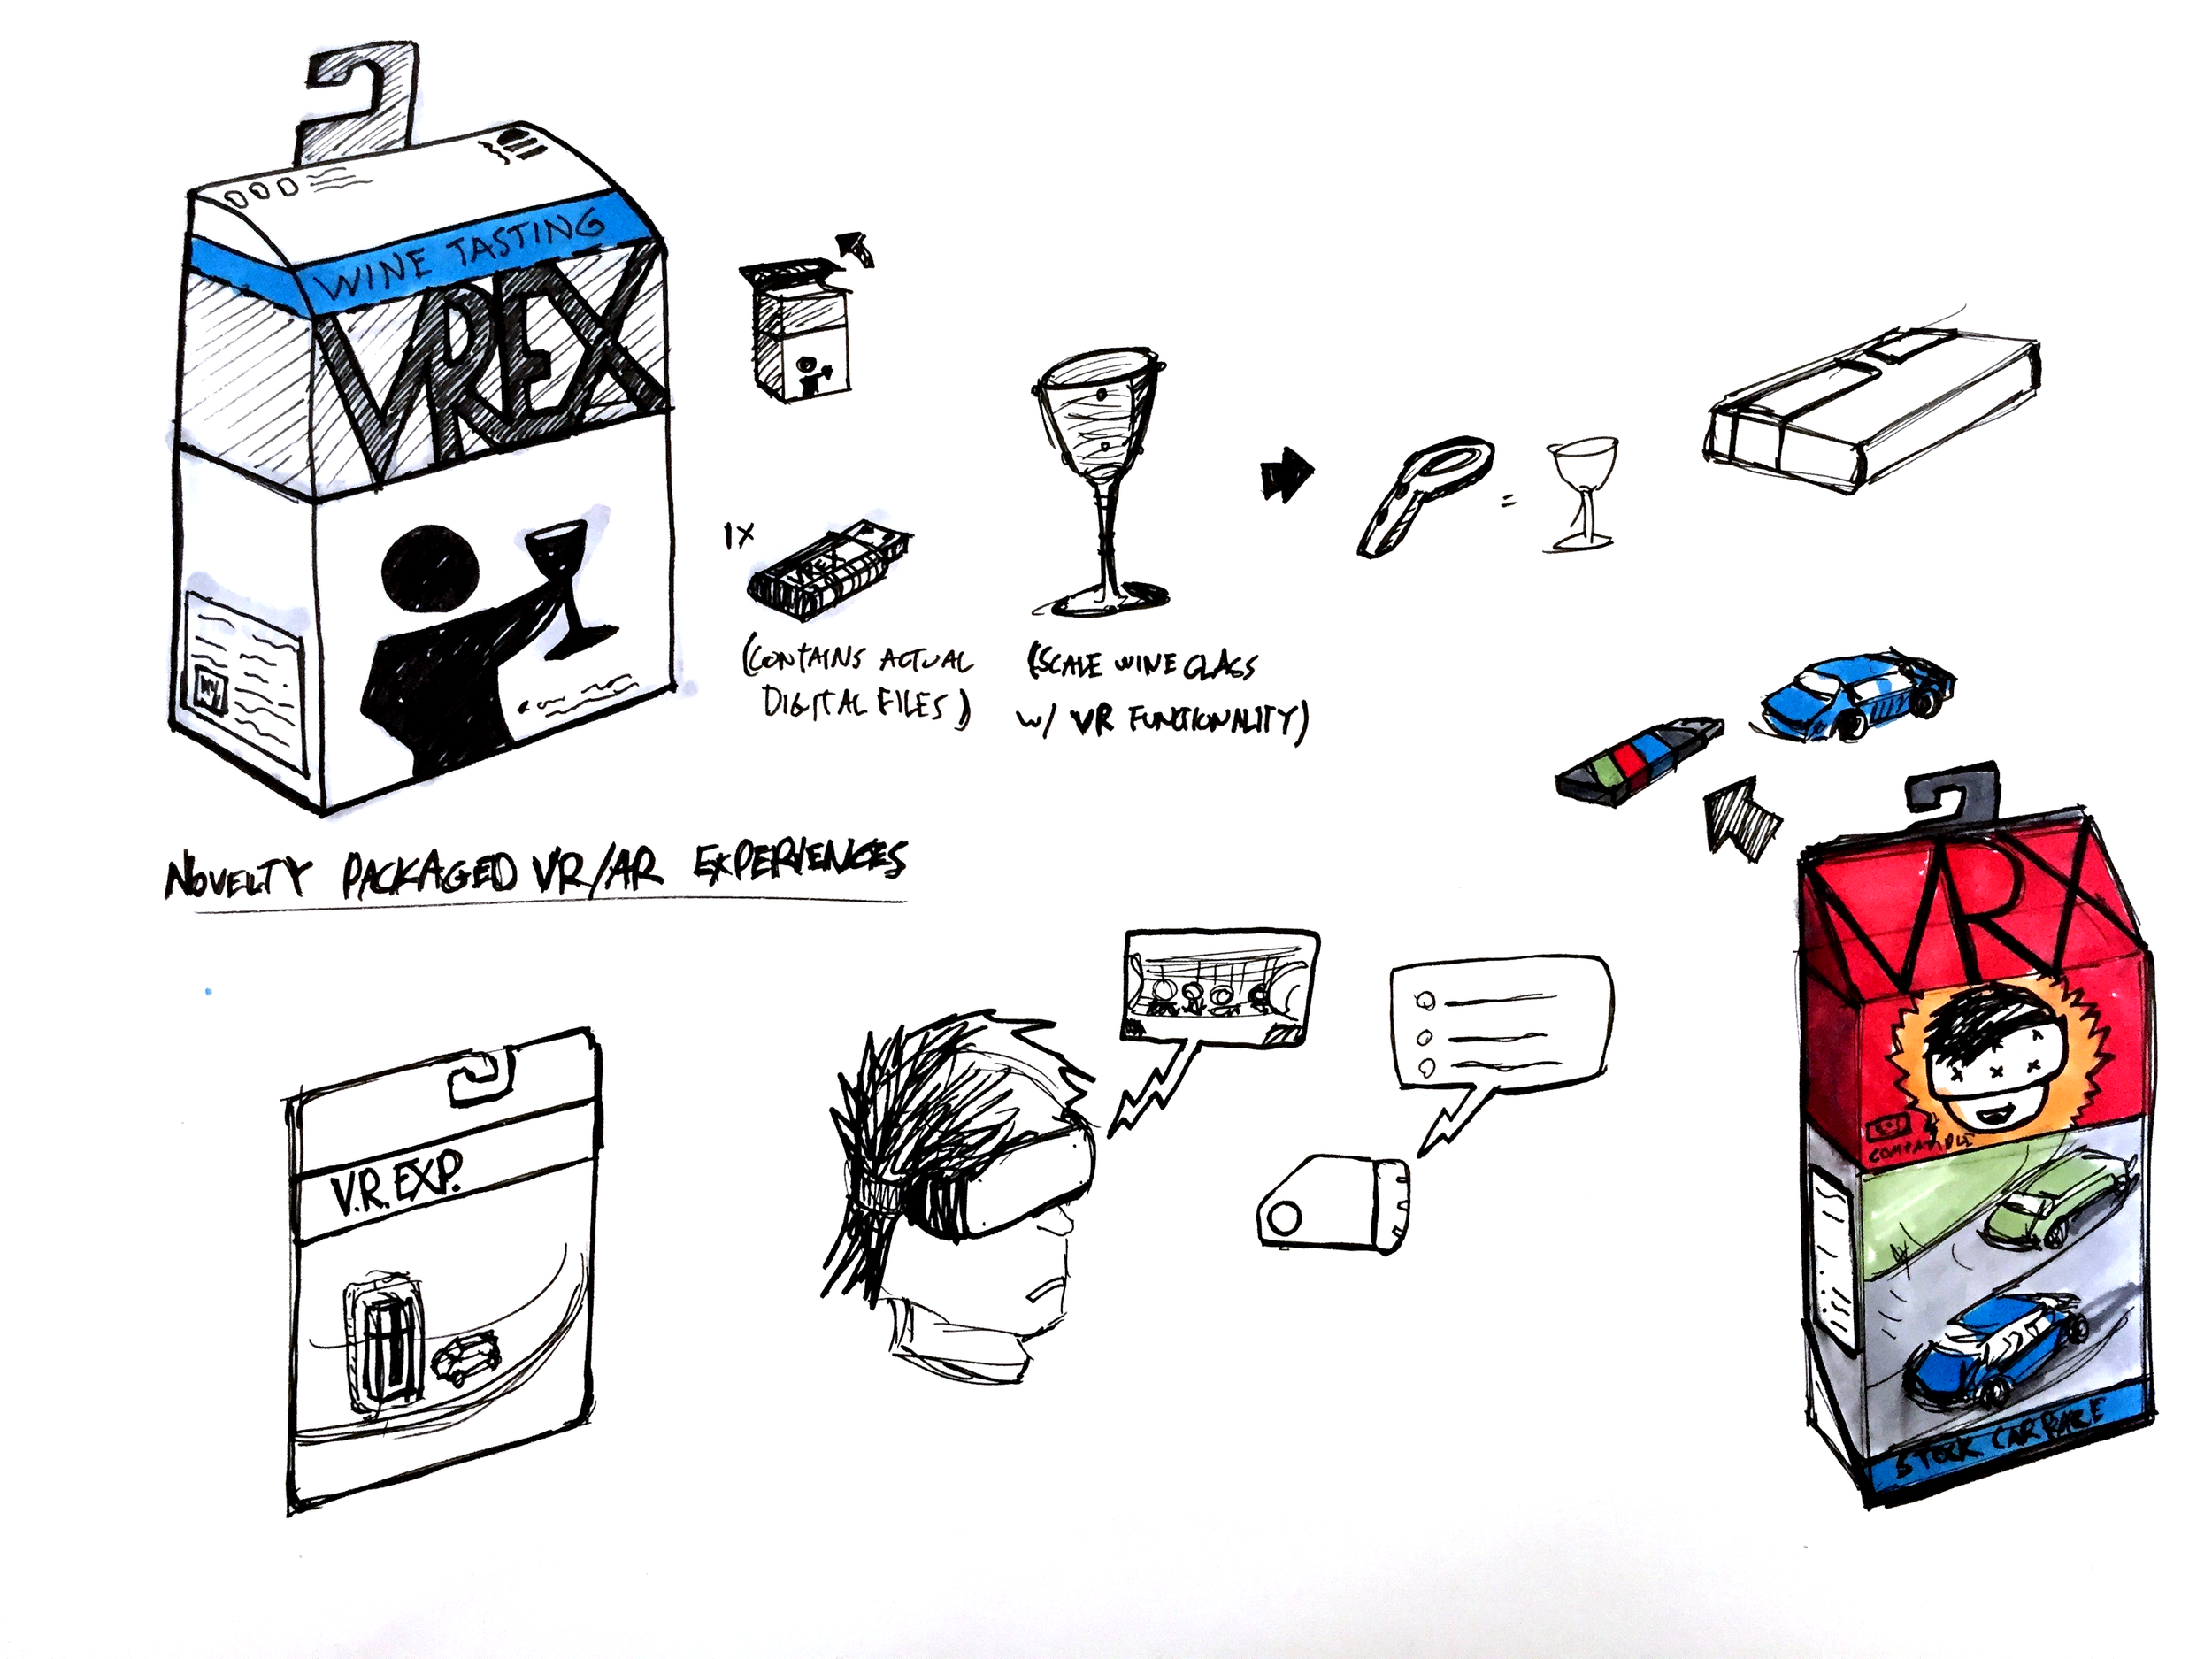 Initial sketches of VR software kit packaging